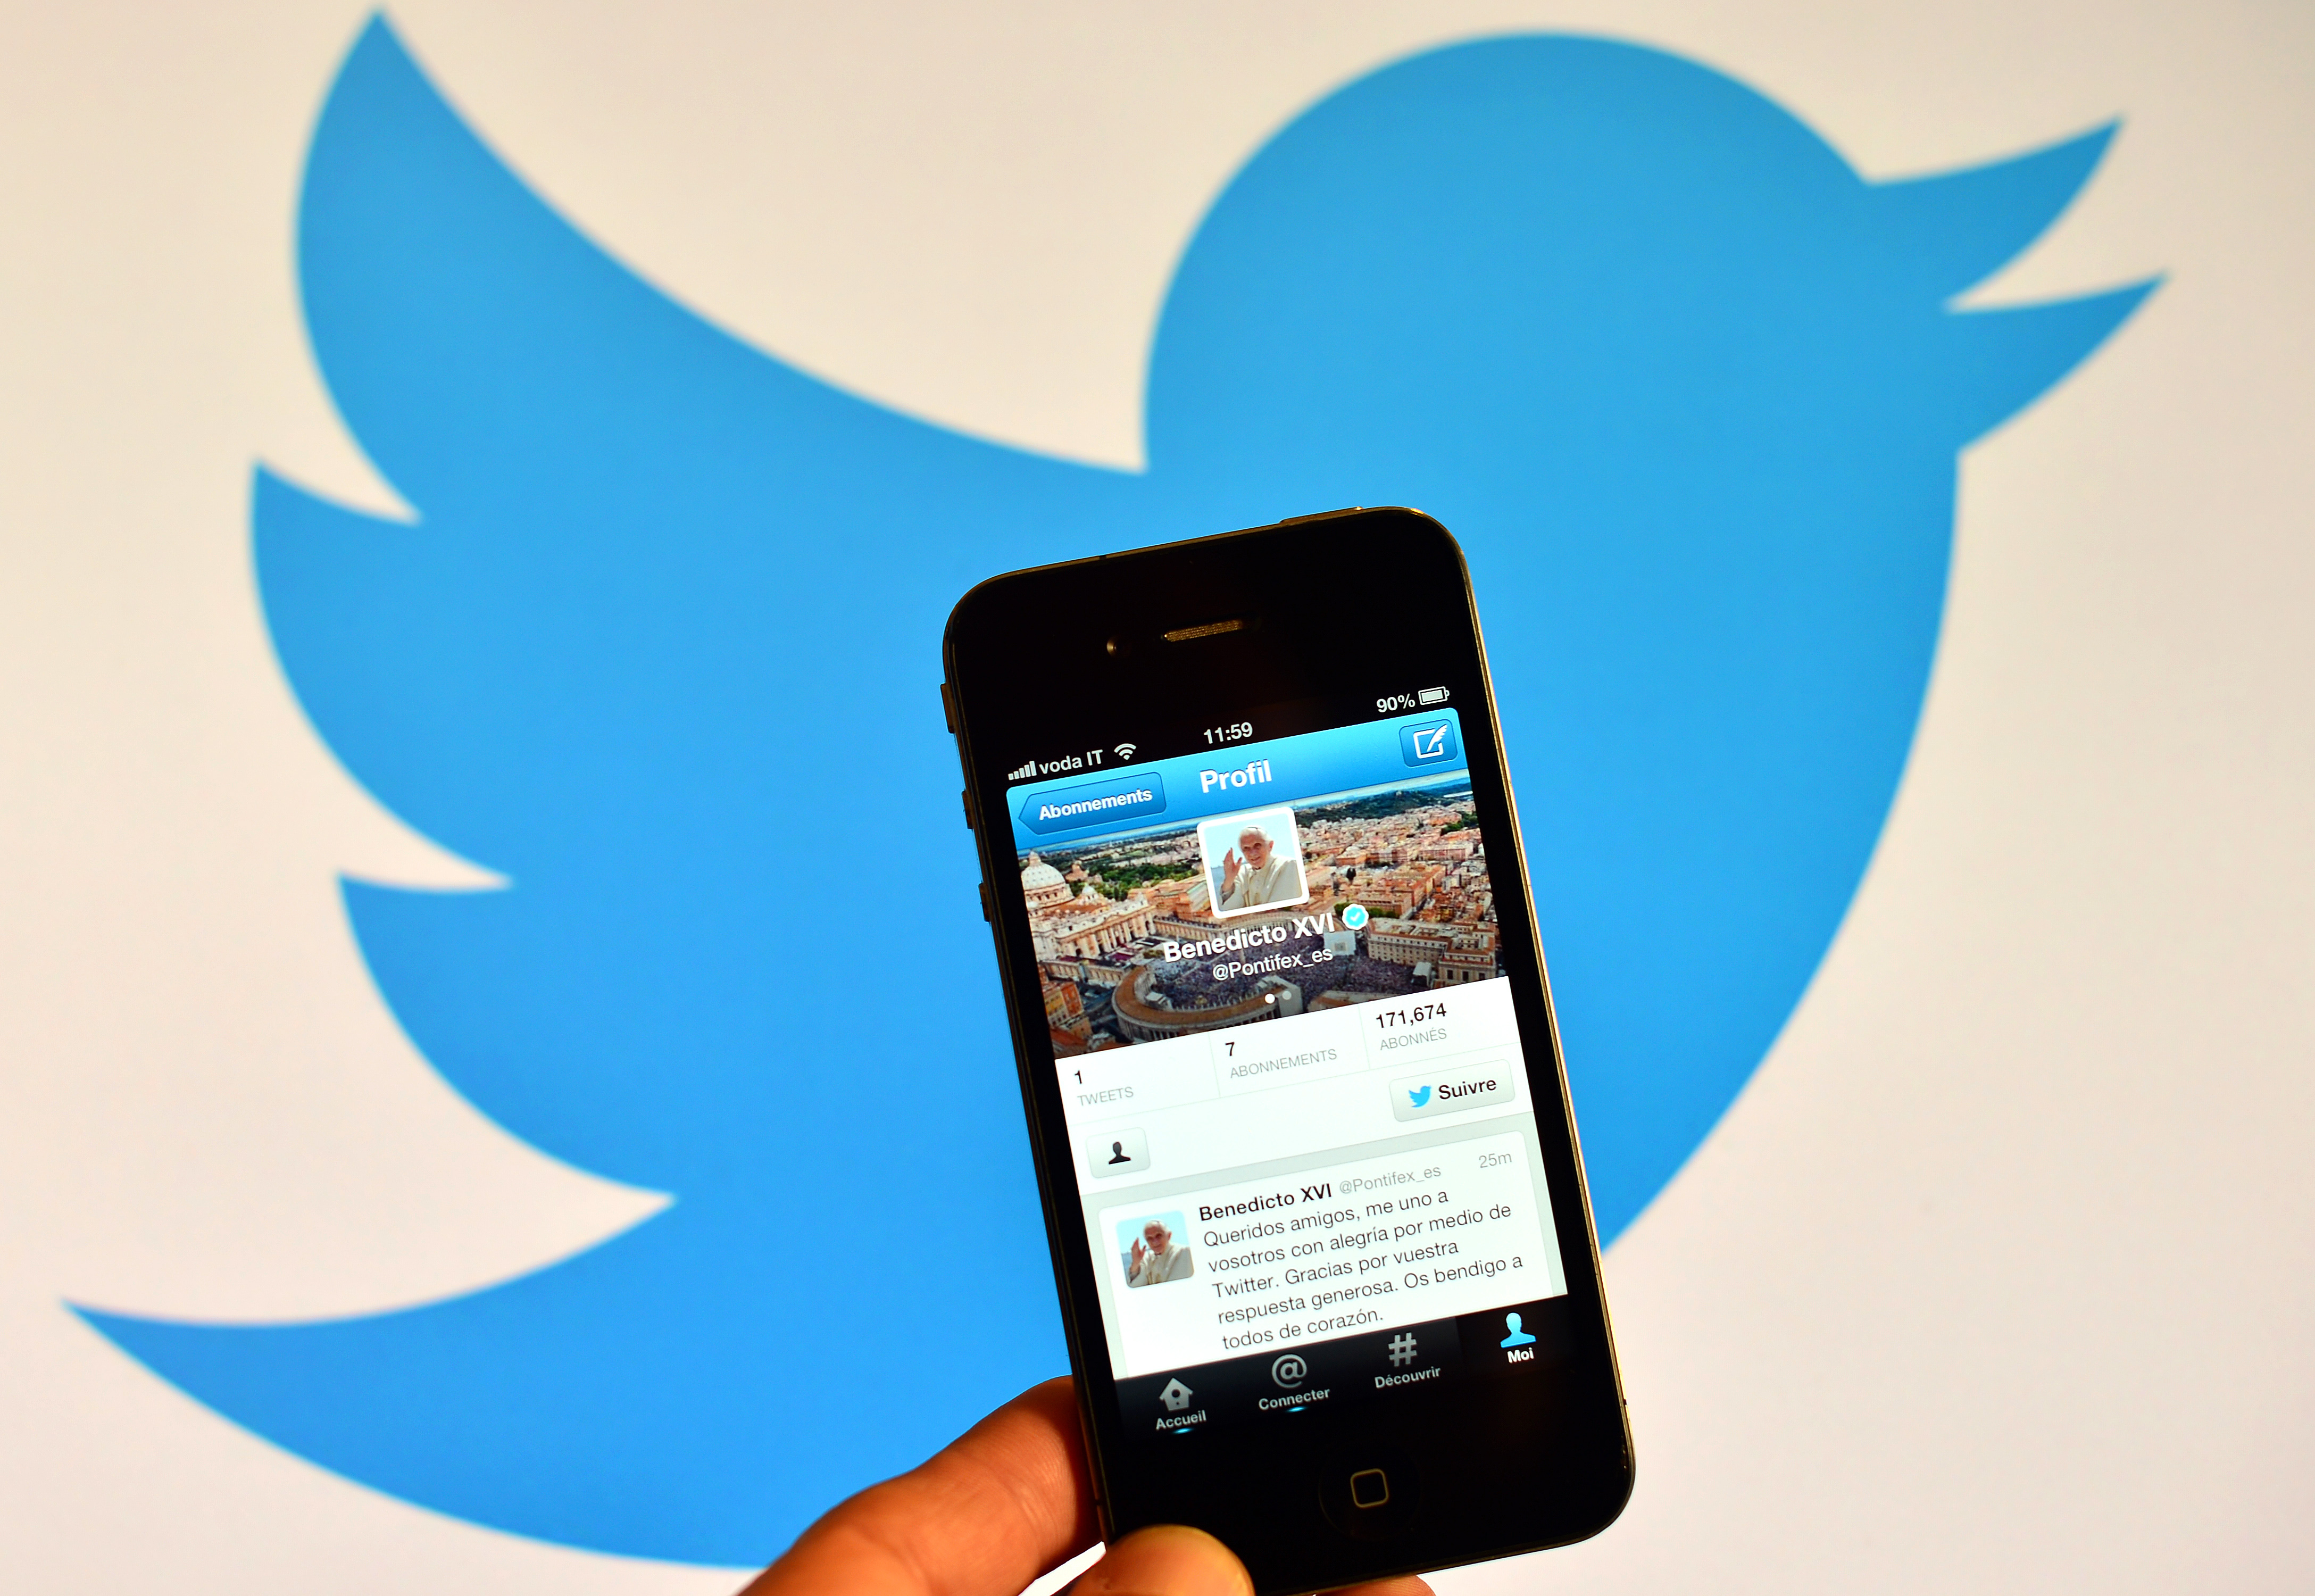 Turkey Reportedly Unblocks Twitter Following Court Ruling